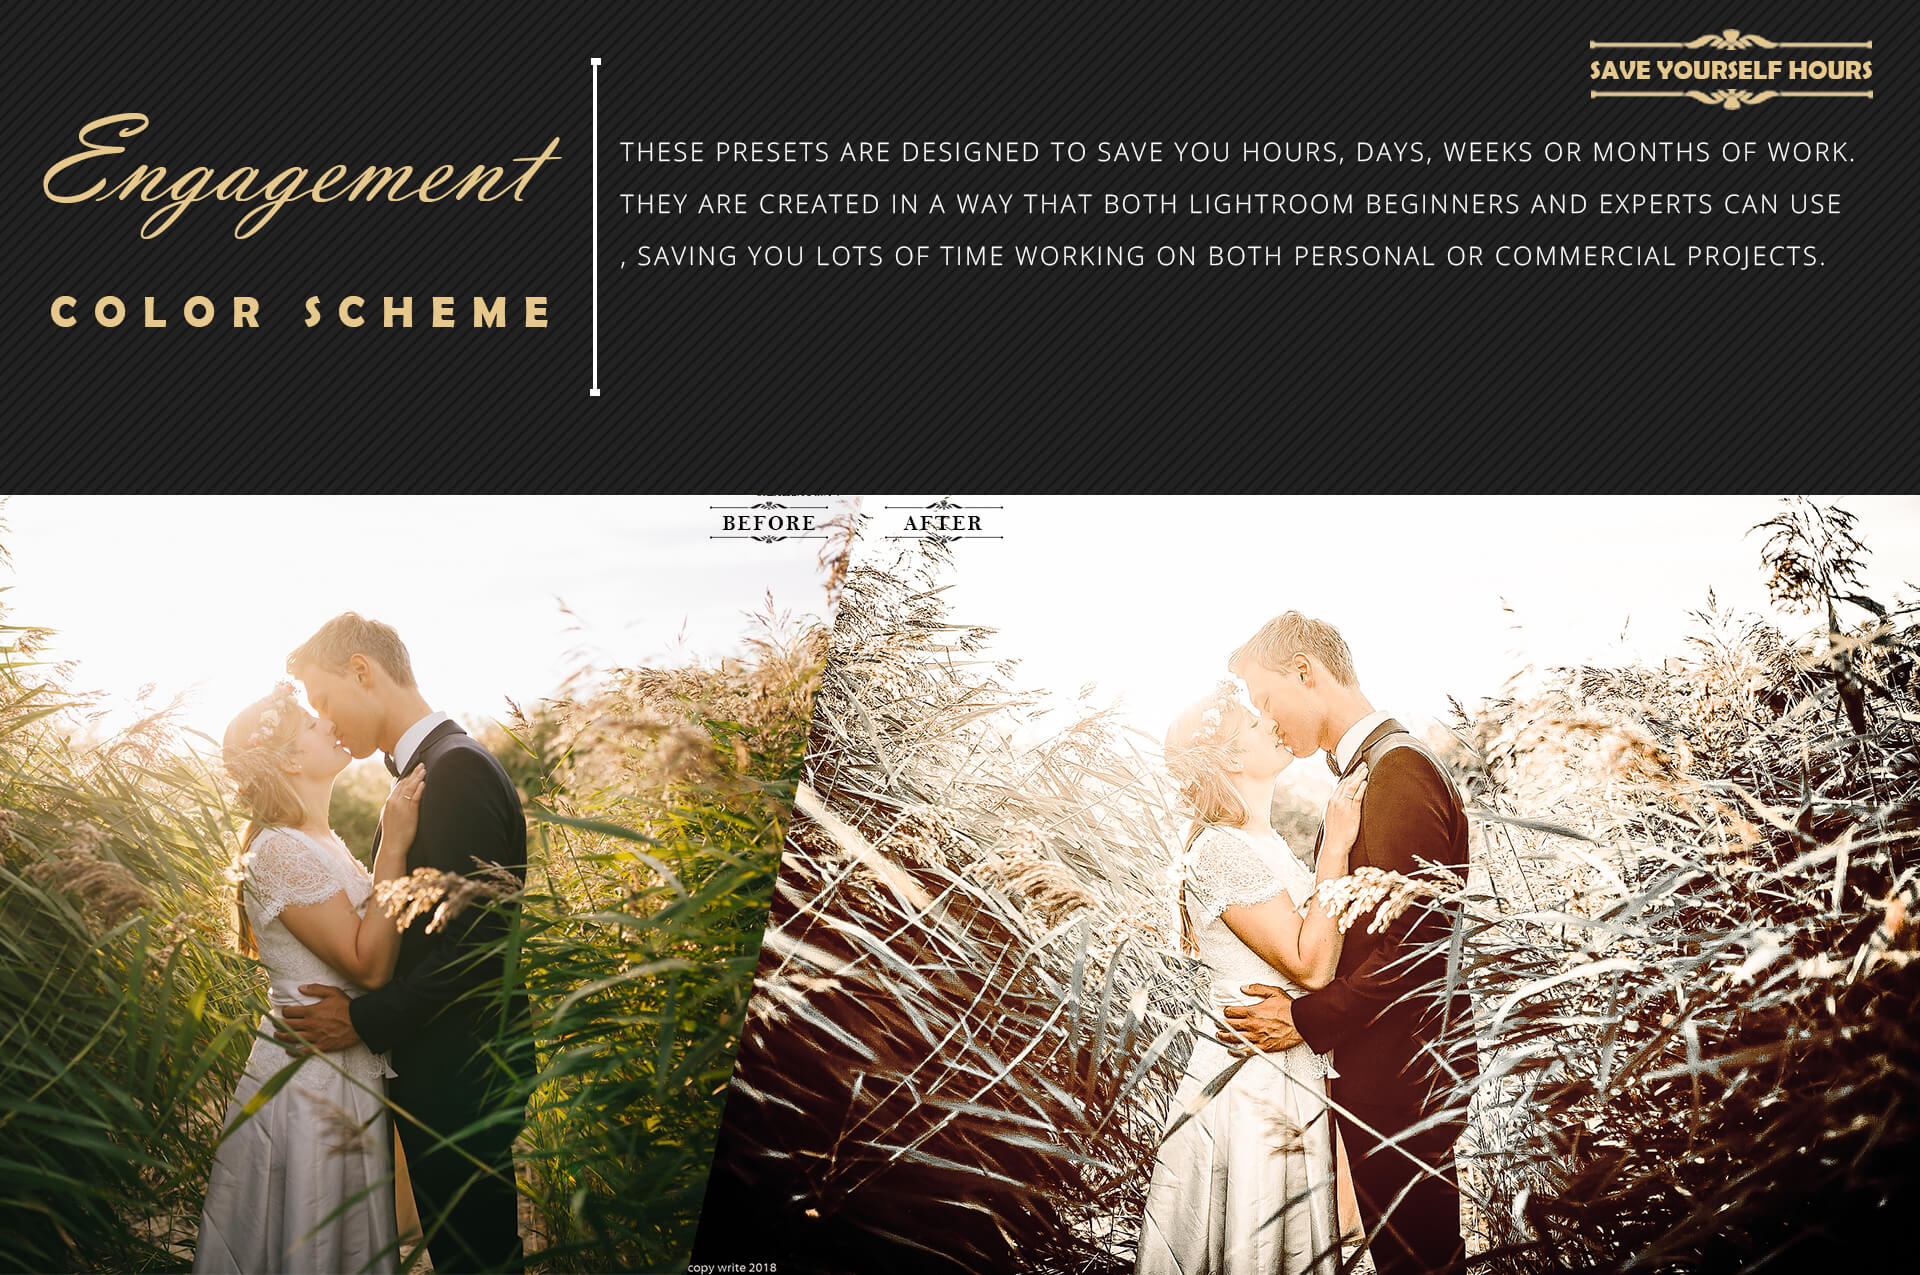 Engagement color grading lightroom presets theme example image 7